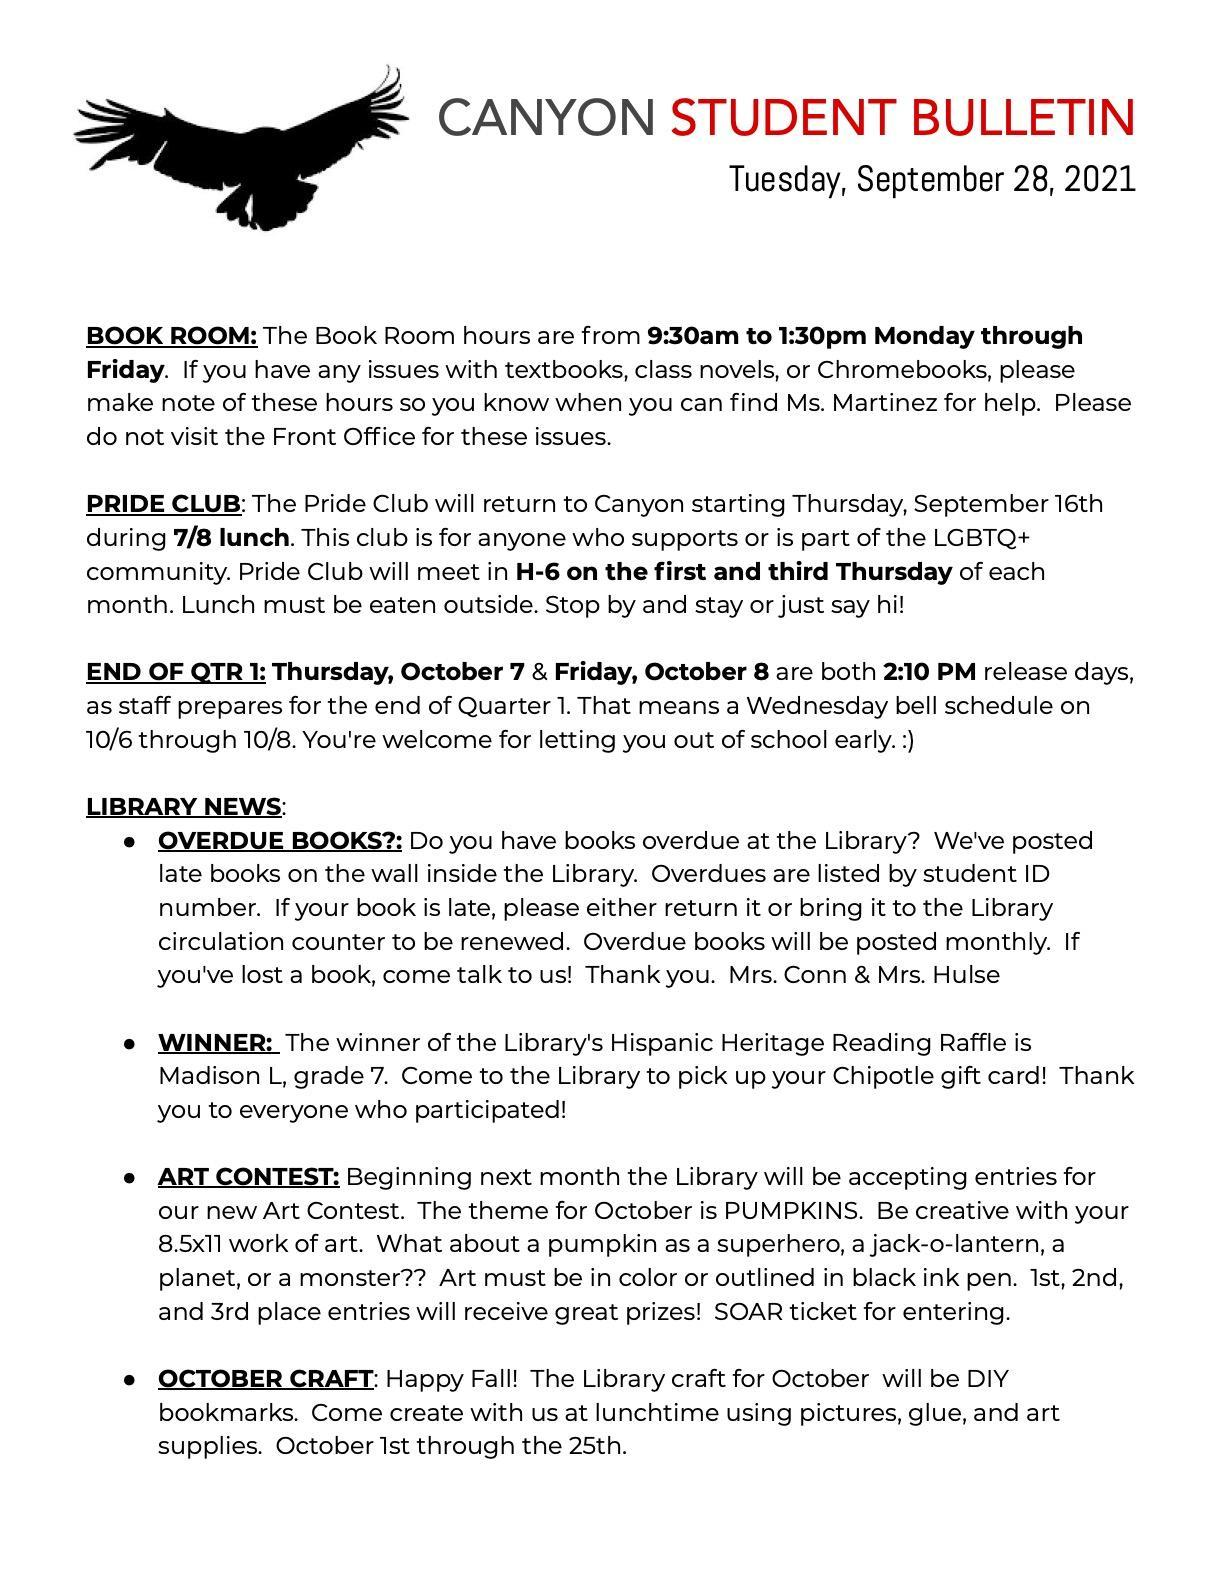 student bulletin page 1